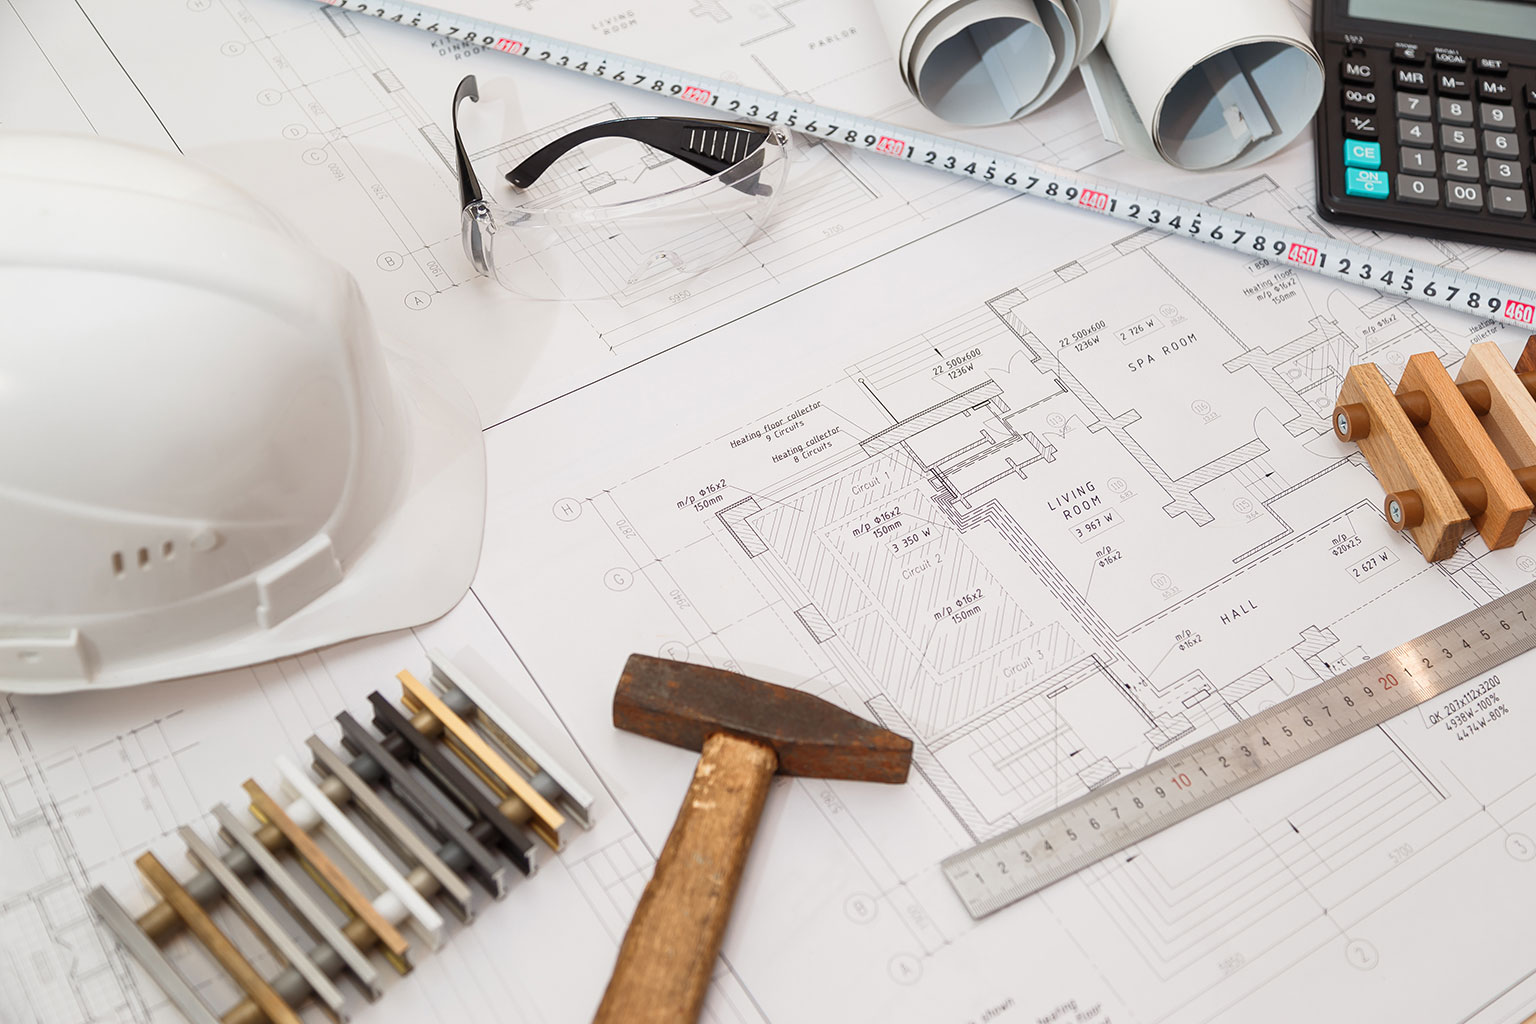 architect-or-engineer-workplace-with-drawings-and--P7P862R